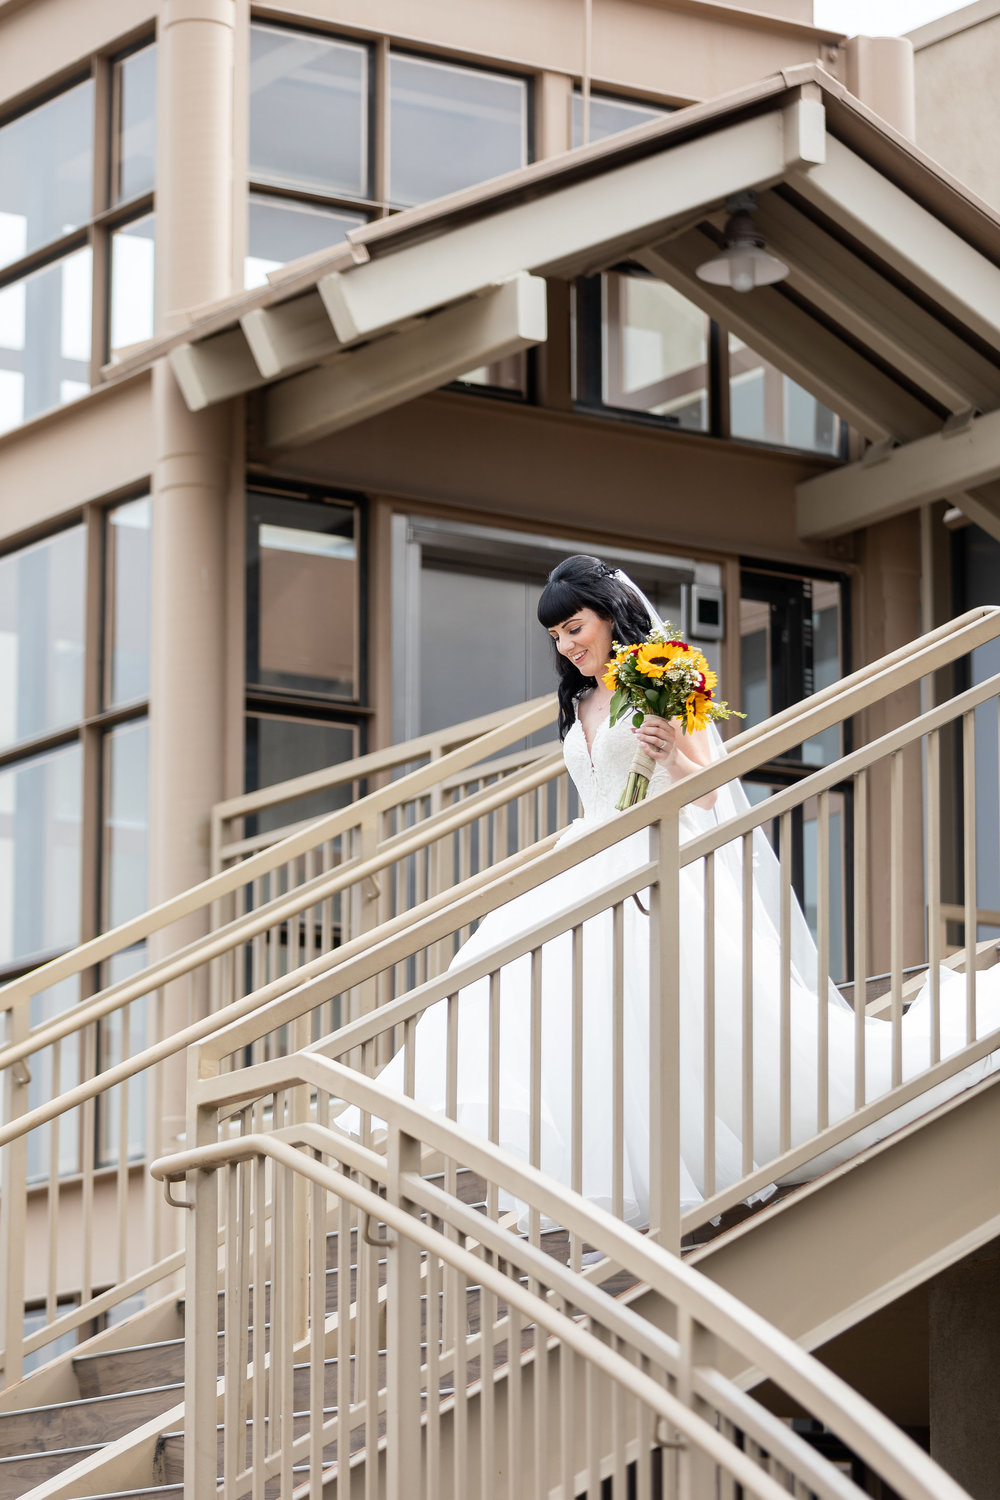 Photo of Bride walking down the stair with her sunflower bouquet and wedding dress.jpg